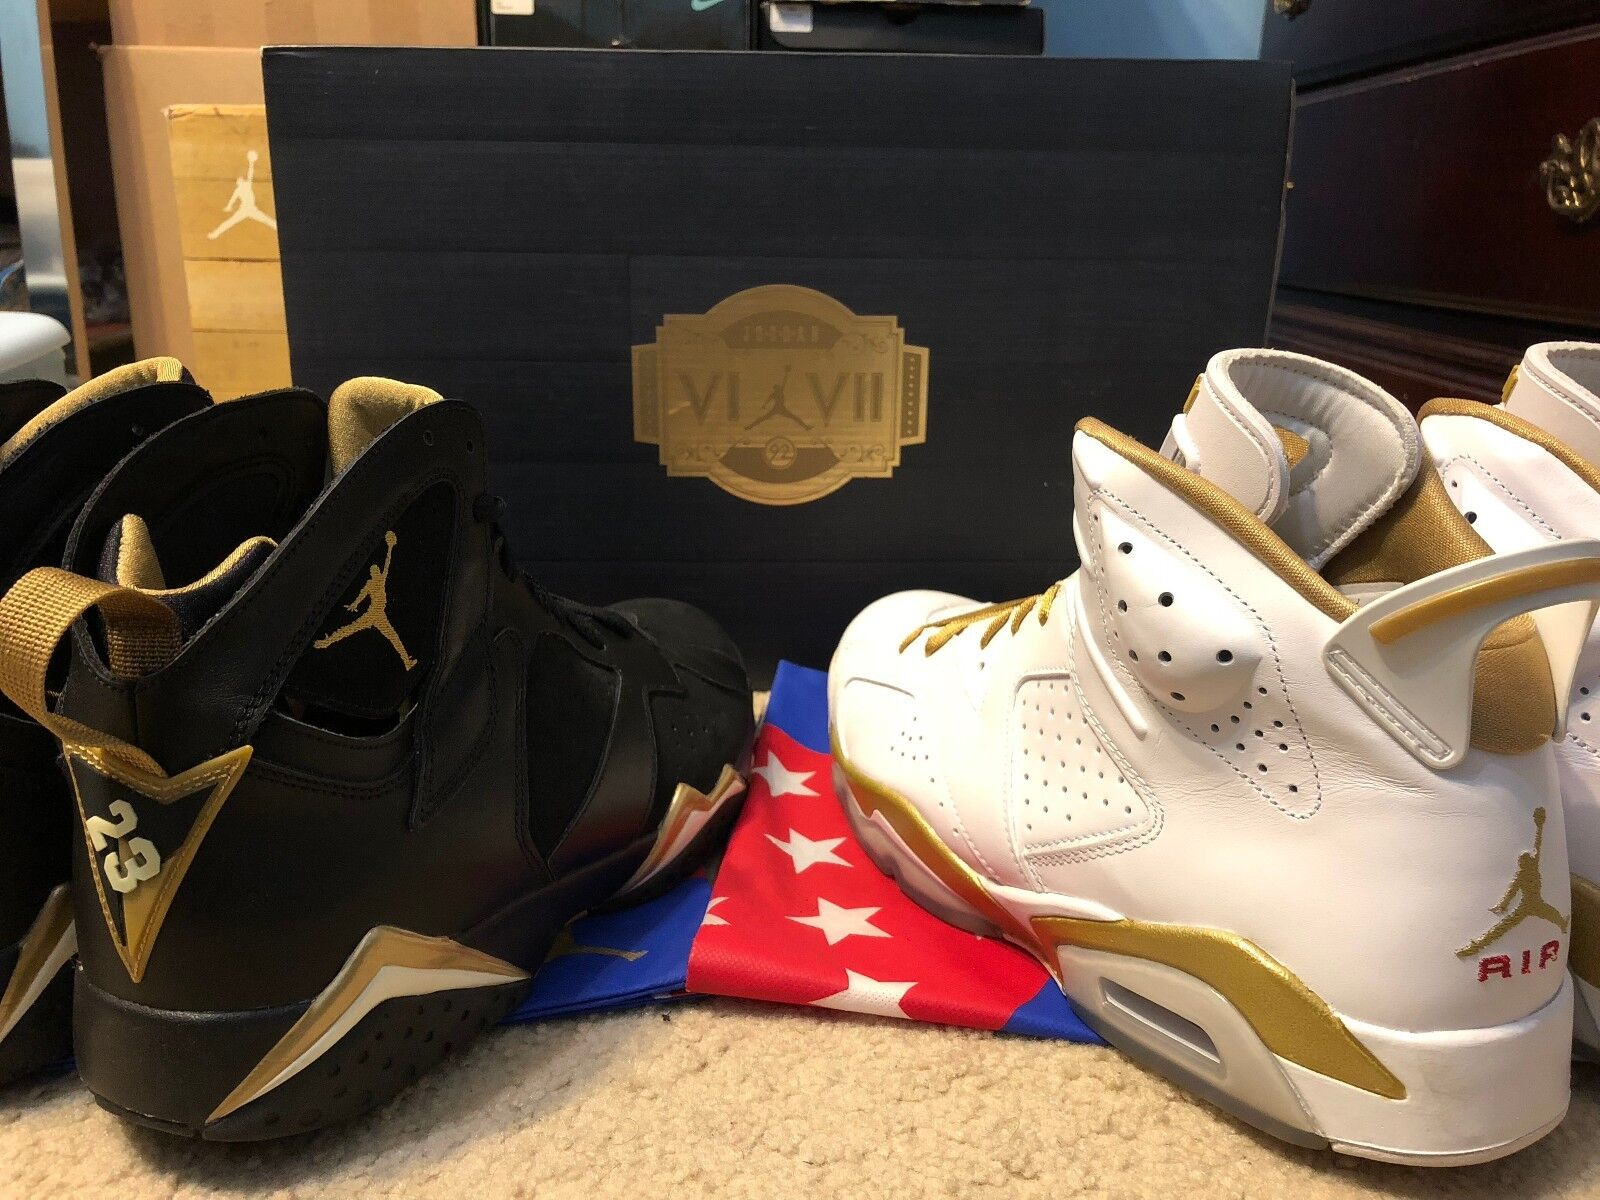 NIKE AIR JORDAN  GOLDEN MOMENTS PACK RETRO 6 AND 7 MENS SIZE 12 preowned Wild casual shoes